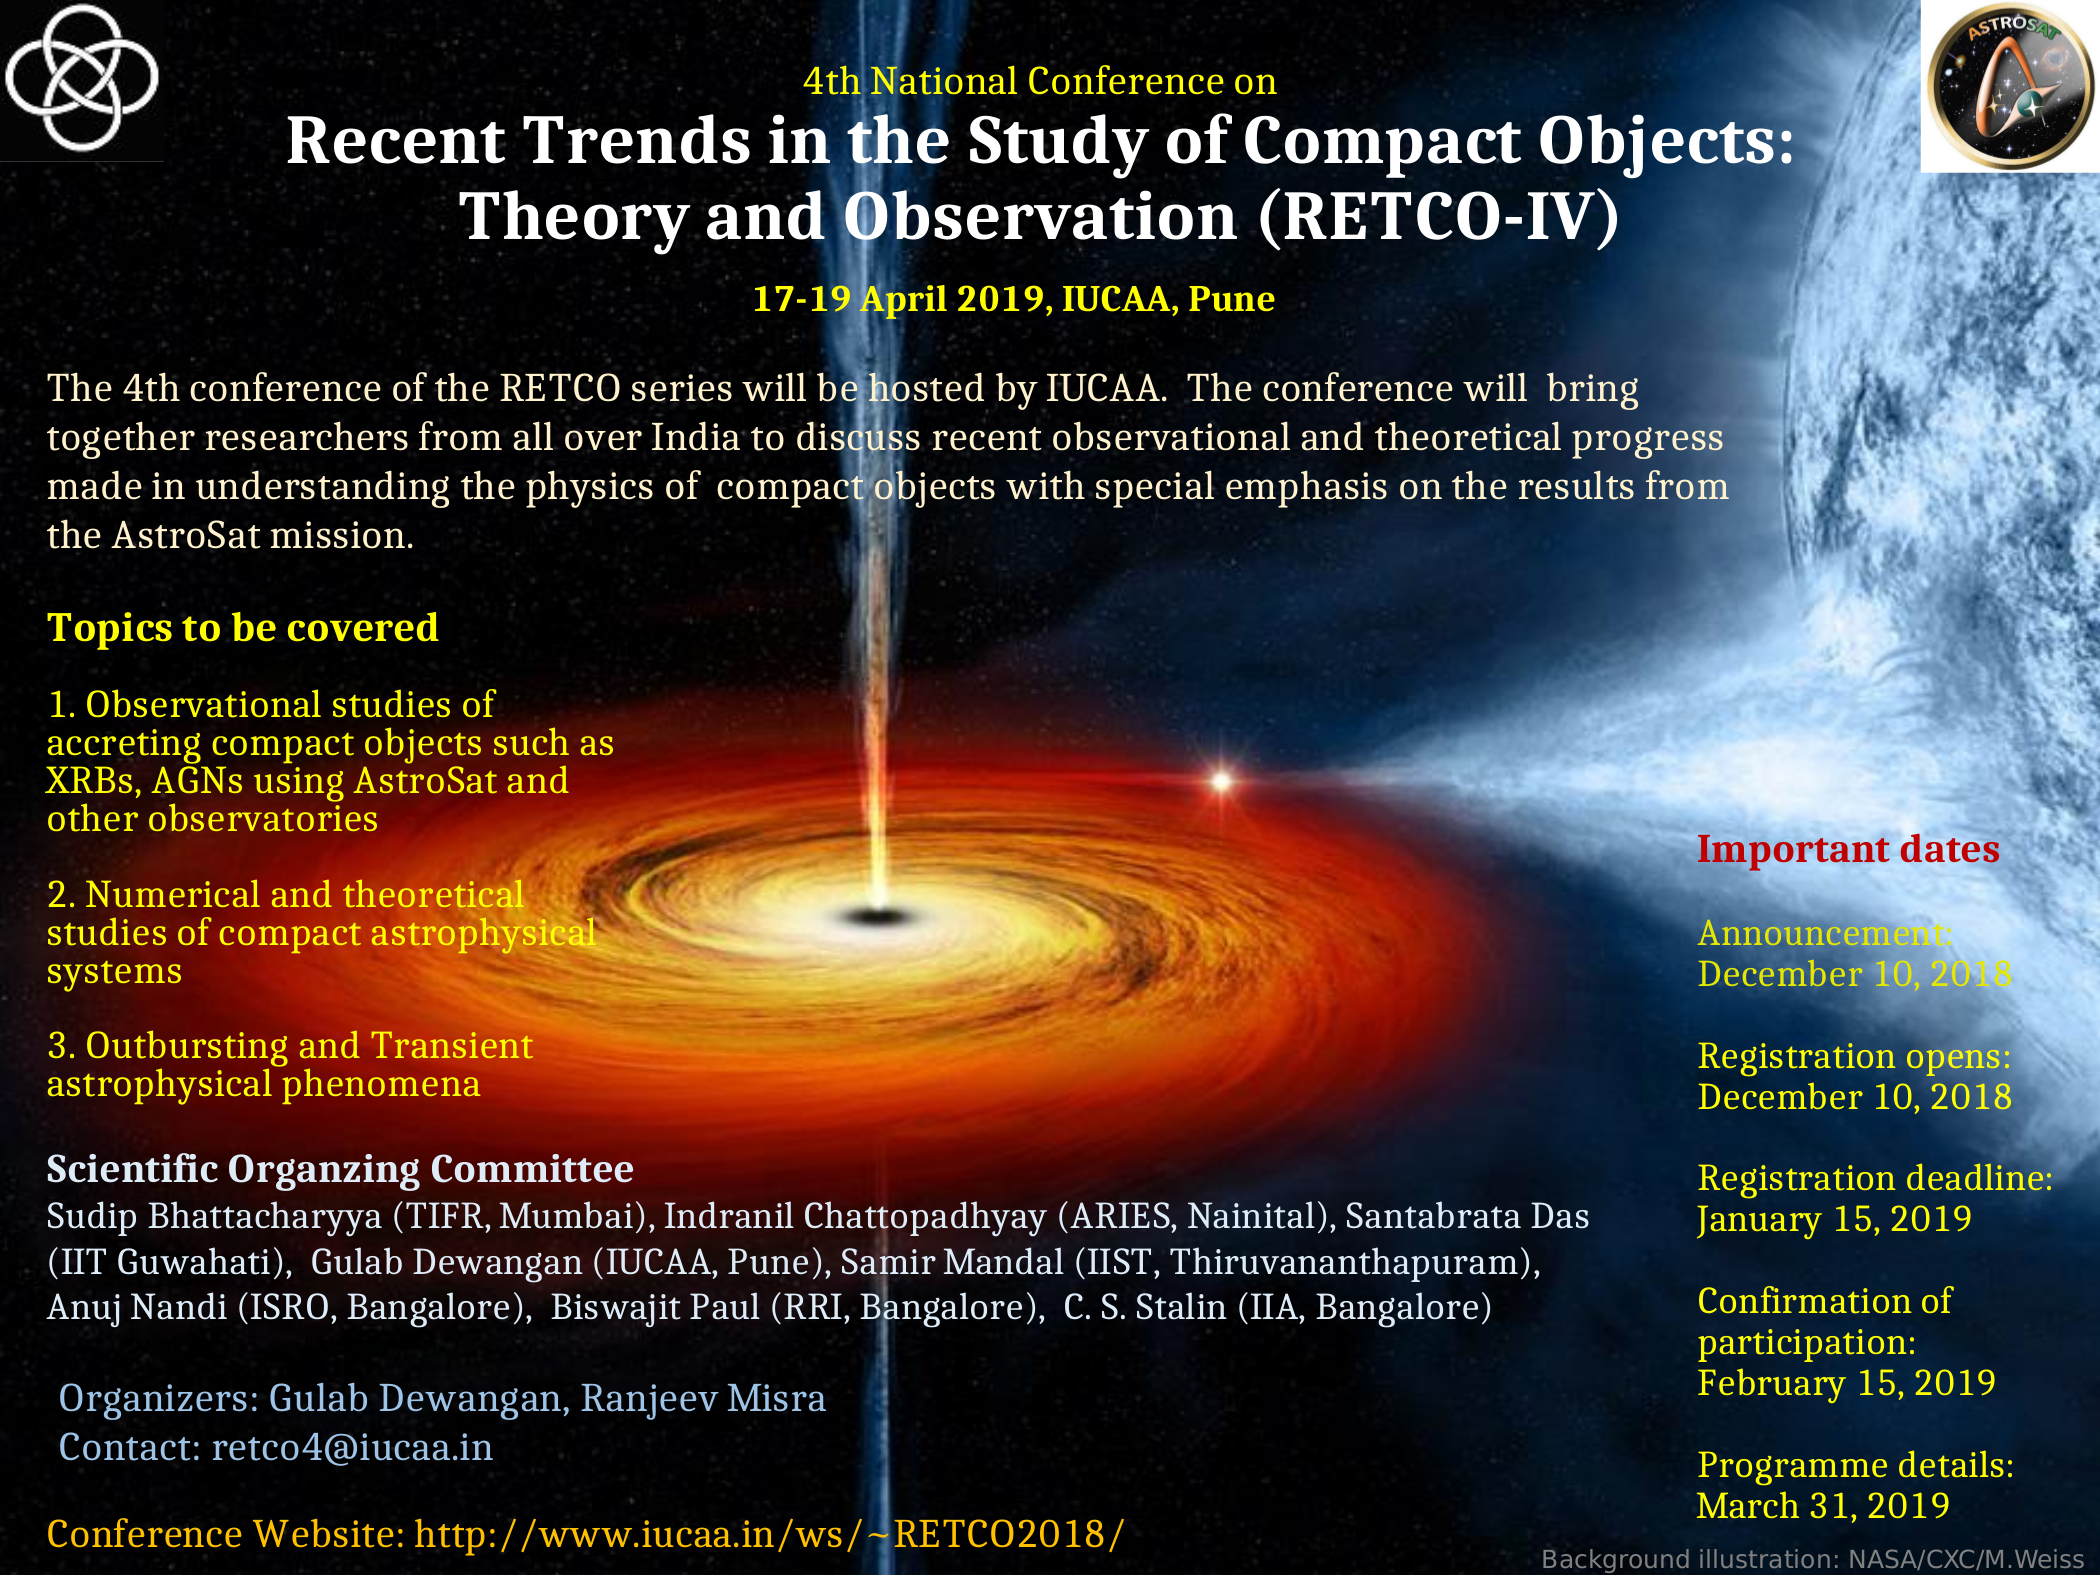 4th National Conference on Recent Trends in the Study of Compact